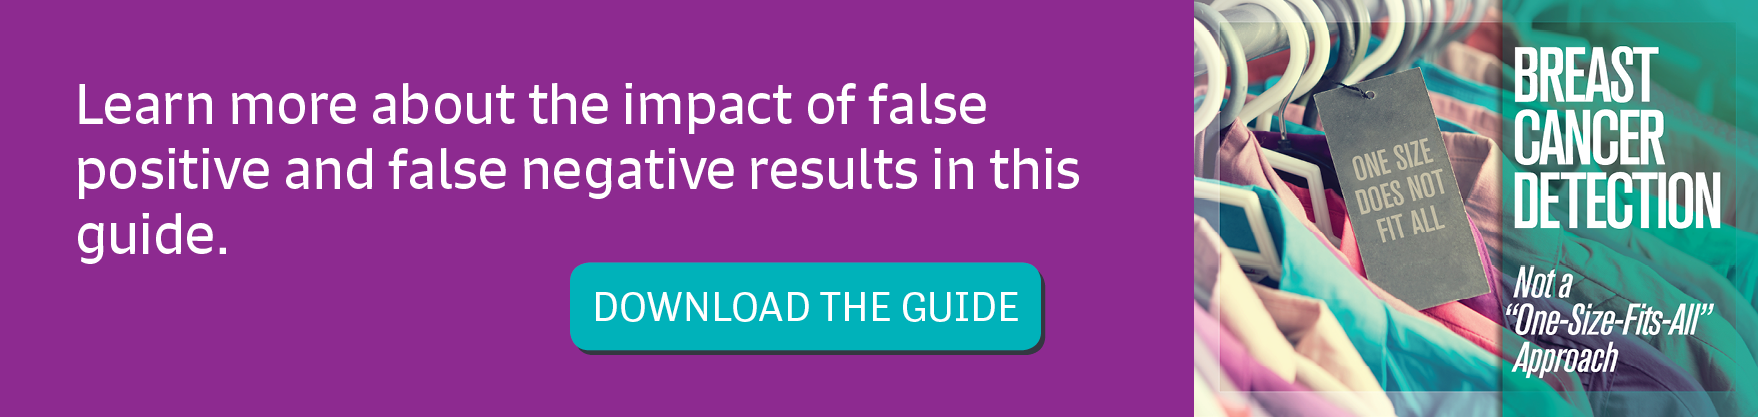 Costs-of-false-positive-and-false-negative-results